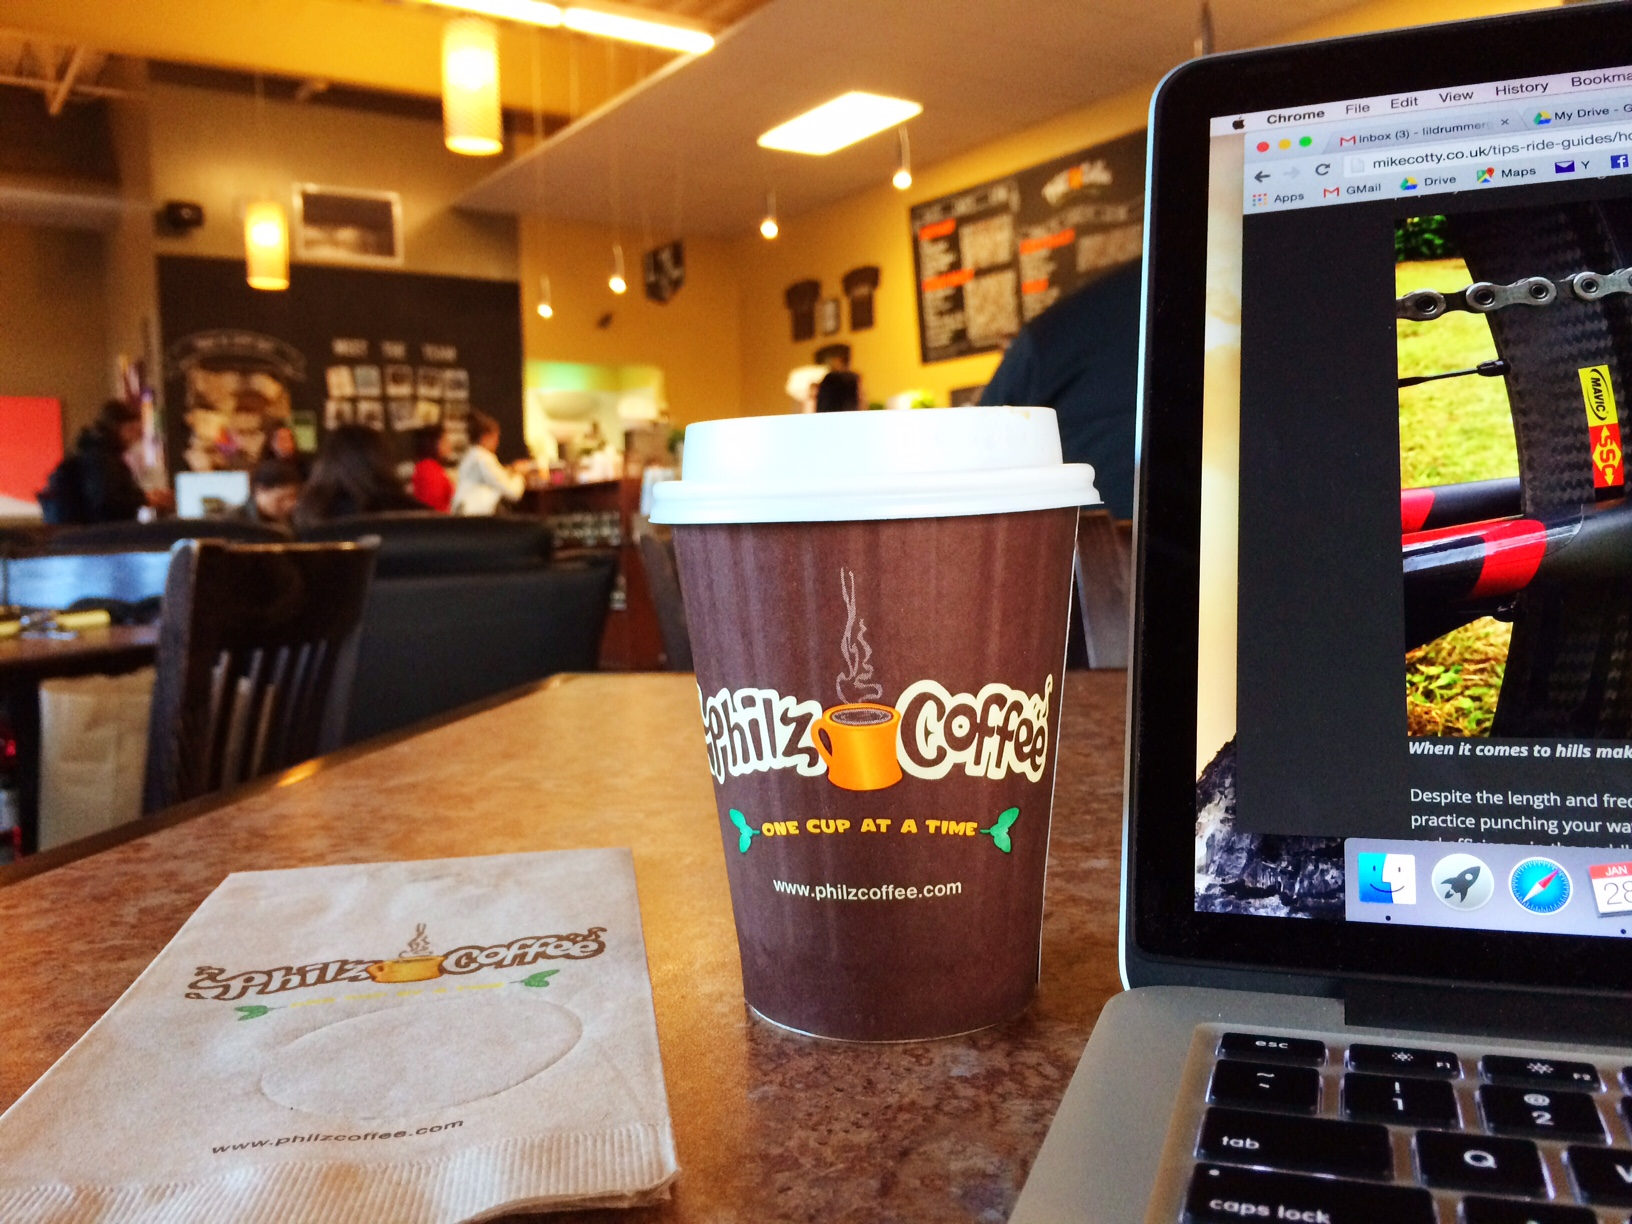 Writing at Philz